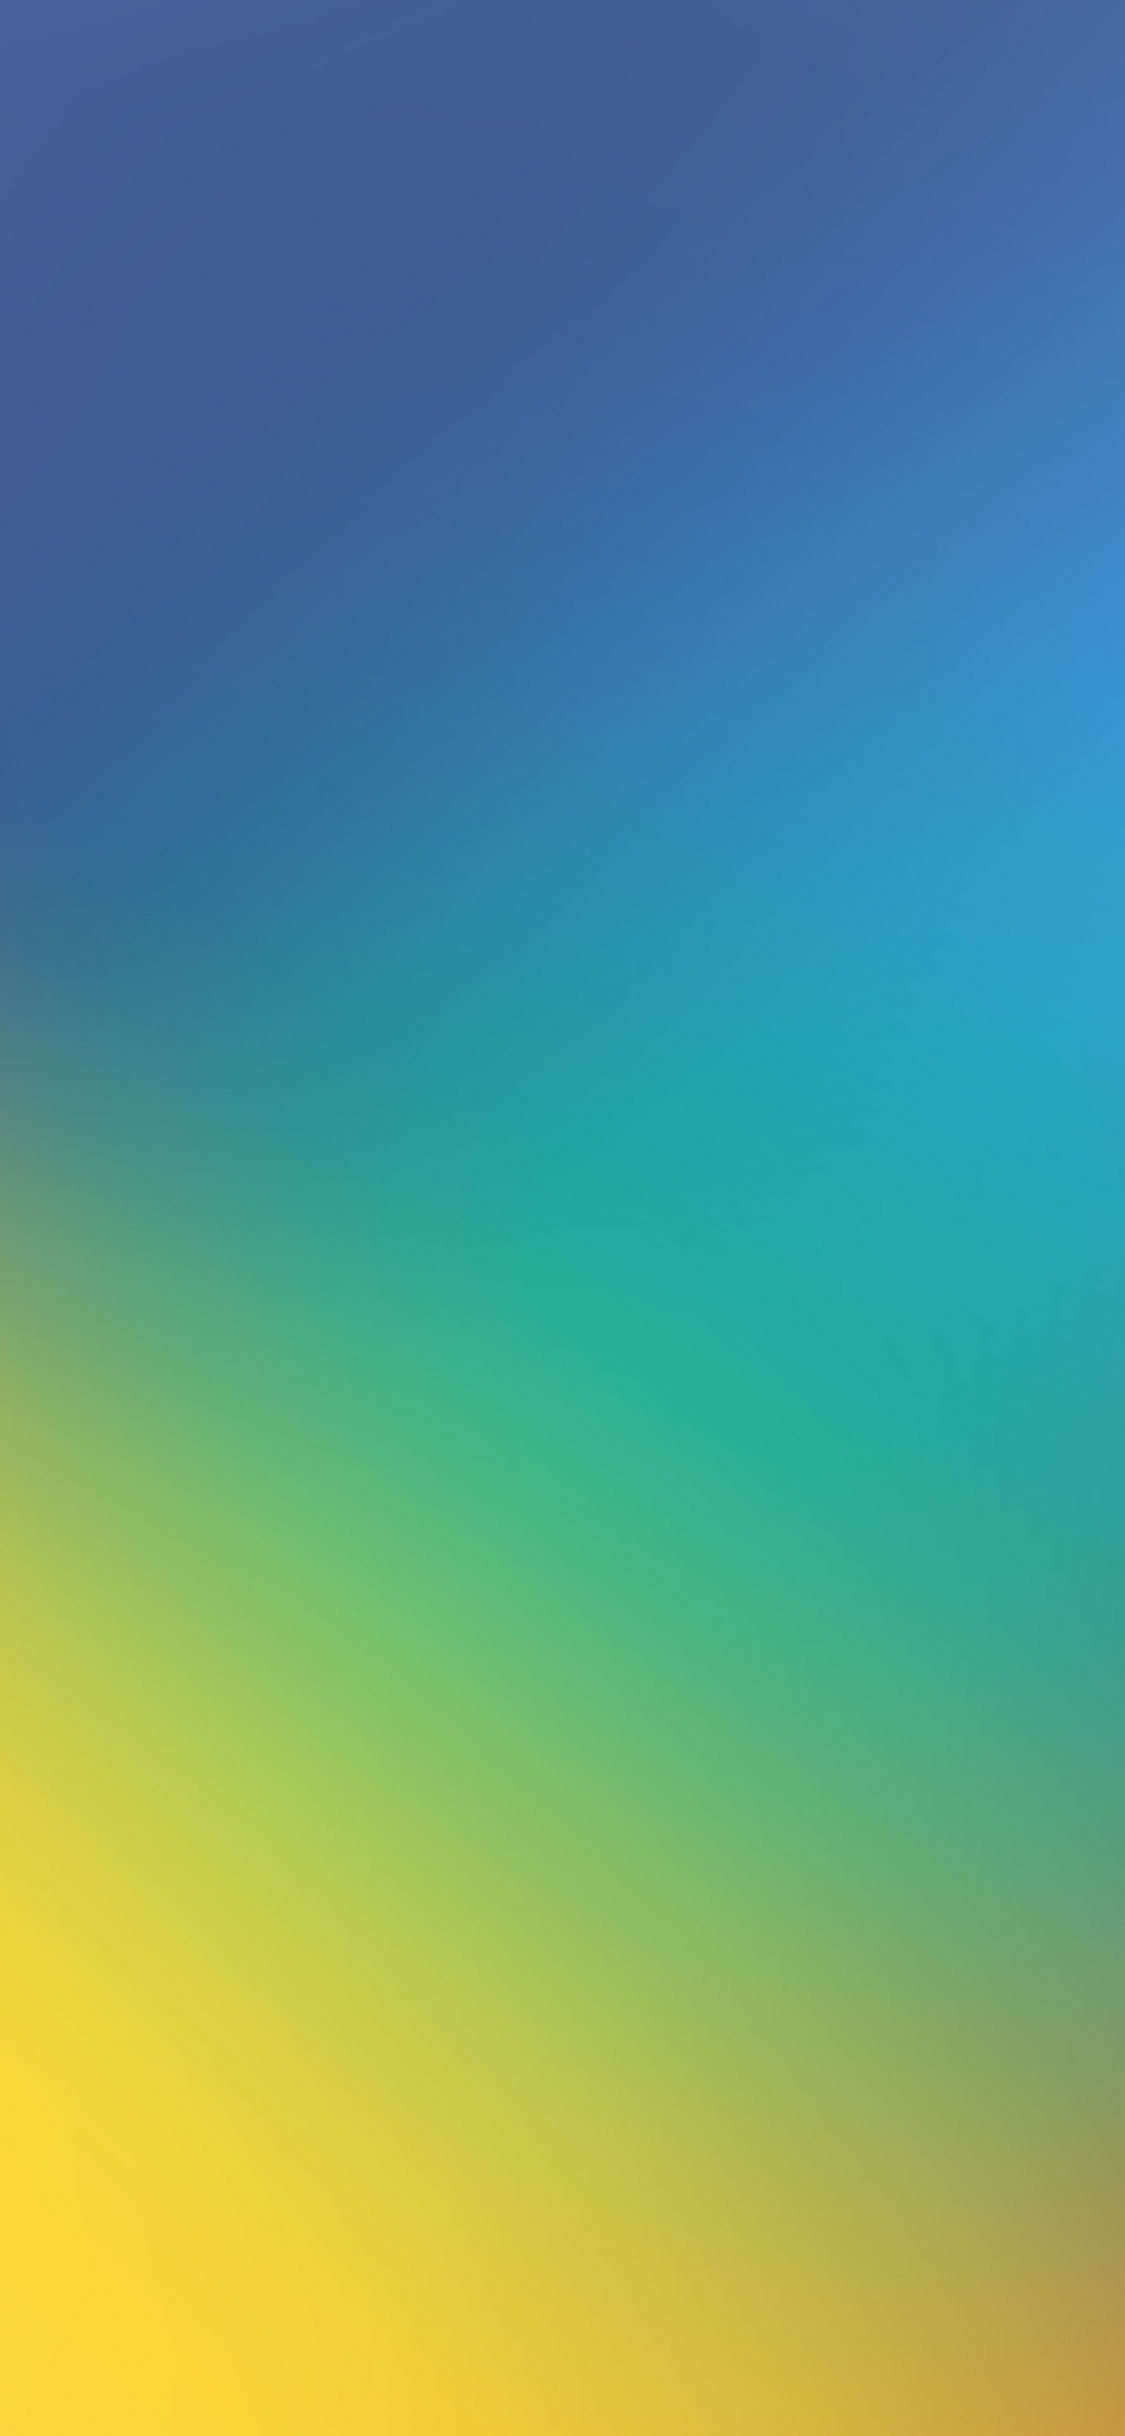 Download 1125x2436 Wallpaper Blue Yellow Gradient Abstract Iphone